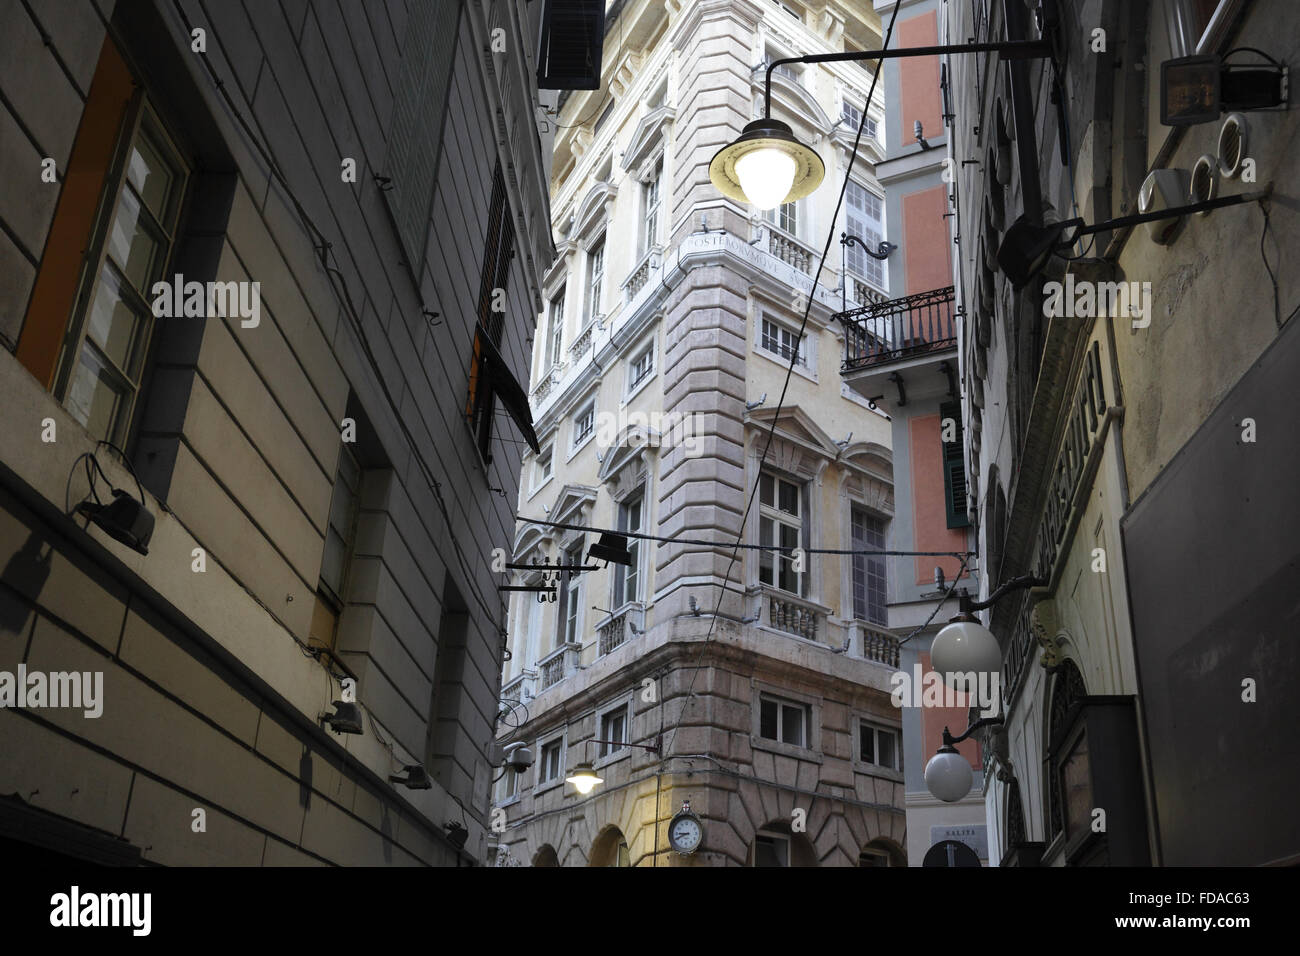 Genoa, Italy, closely built houses in the old town - Stock Image